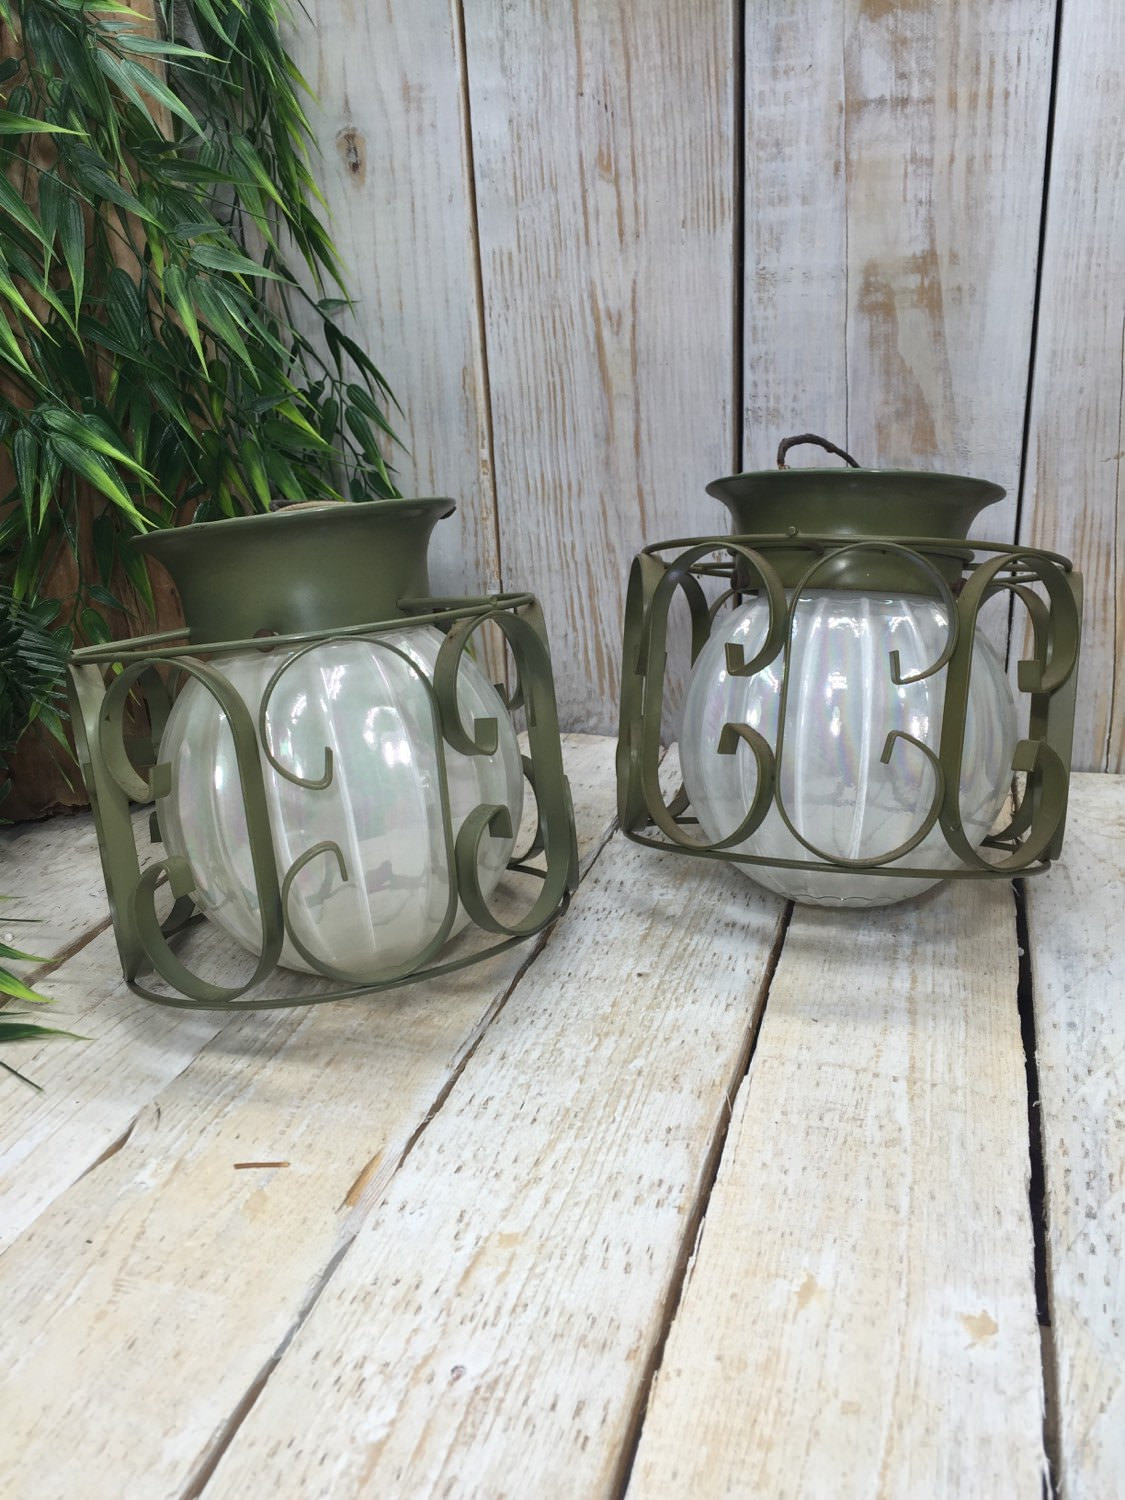 Vintage Outdoor Lighting Fixture 1 - Outdoor Lighting - iD Lights